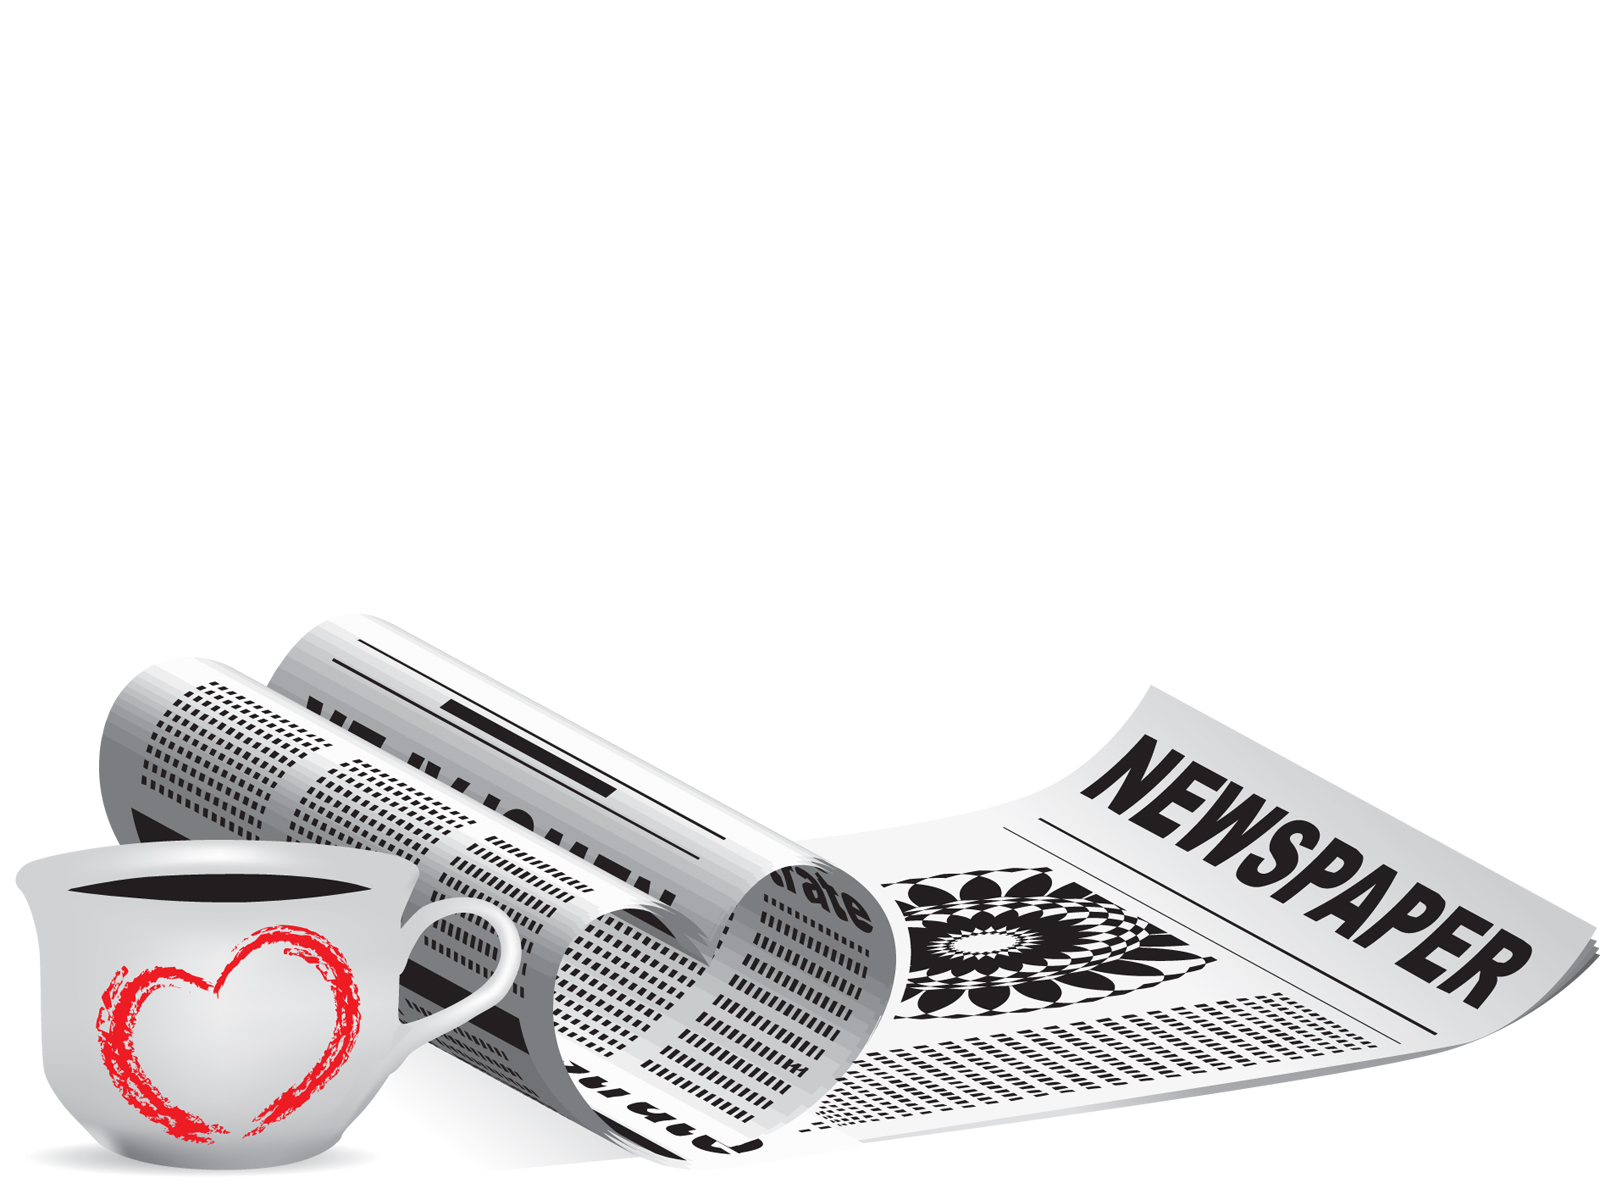 Newspaper with Coffee PPT Backgrounds